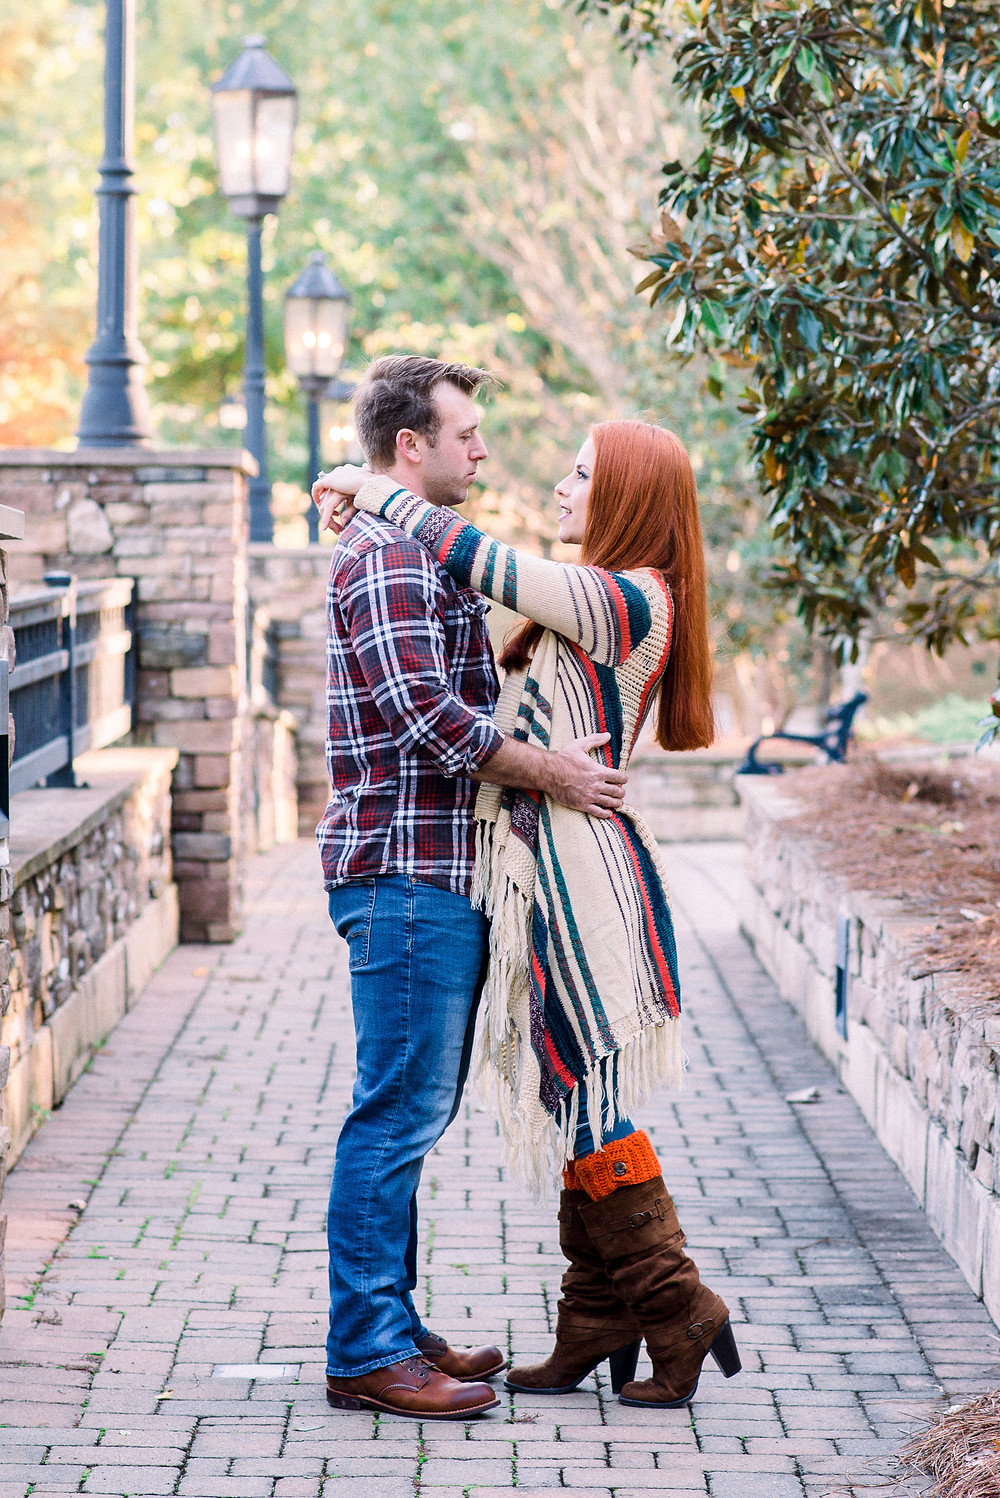 Fine Art engagement photographer serving Columbia, Charleston, Greenville, Charlotte, NC Augusta, Ga, Nashville, TN surrounding areas and worldwide destination weddings and elopements. Nina Bashaw Photography